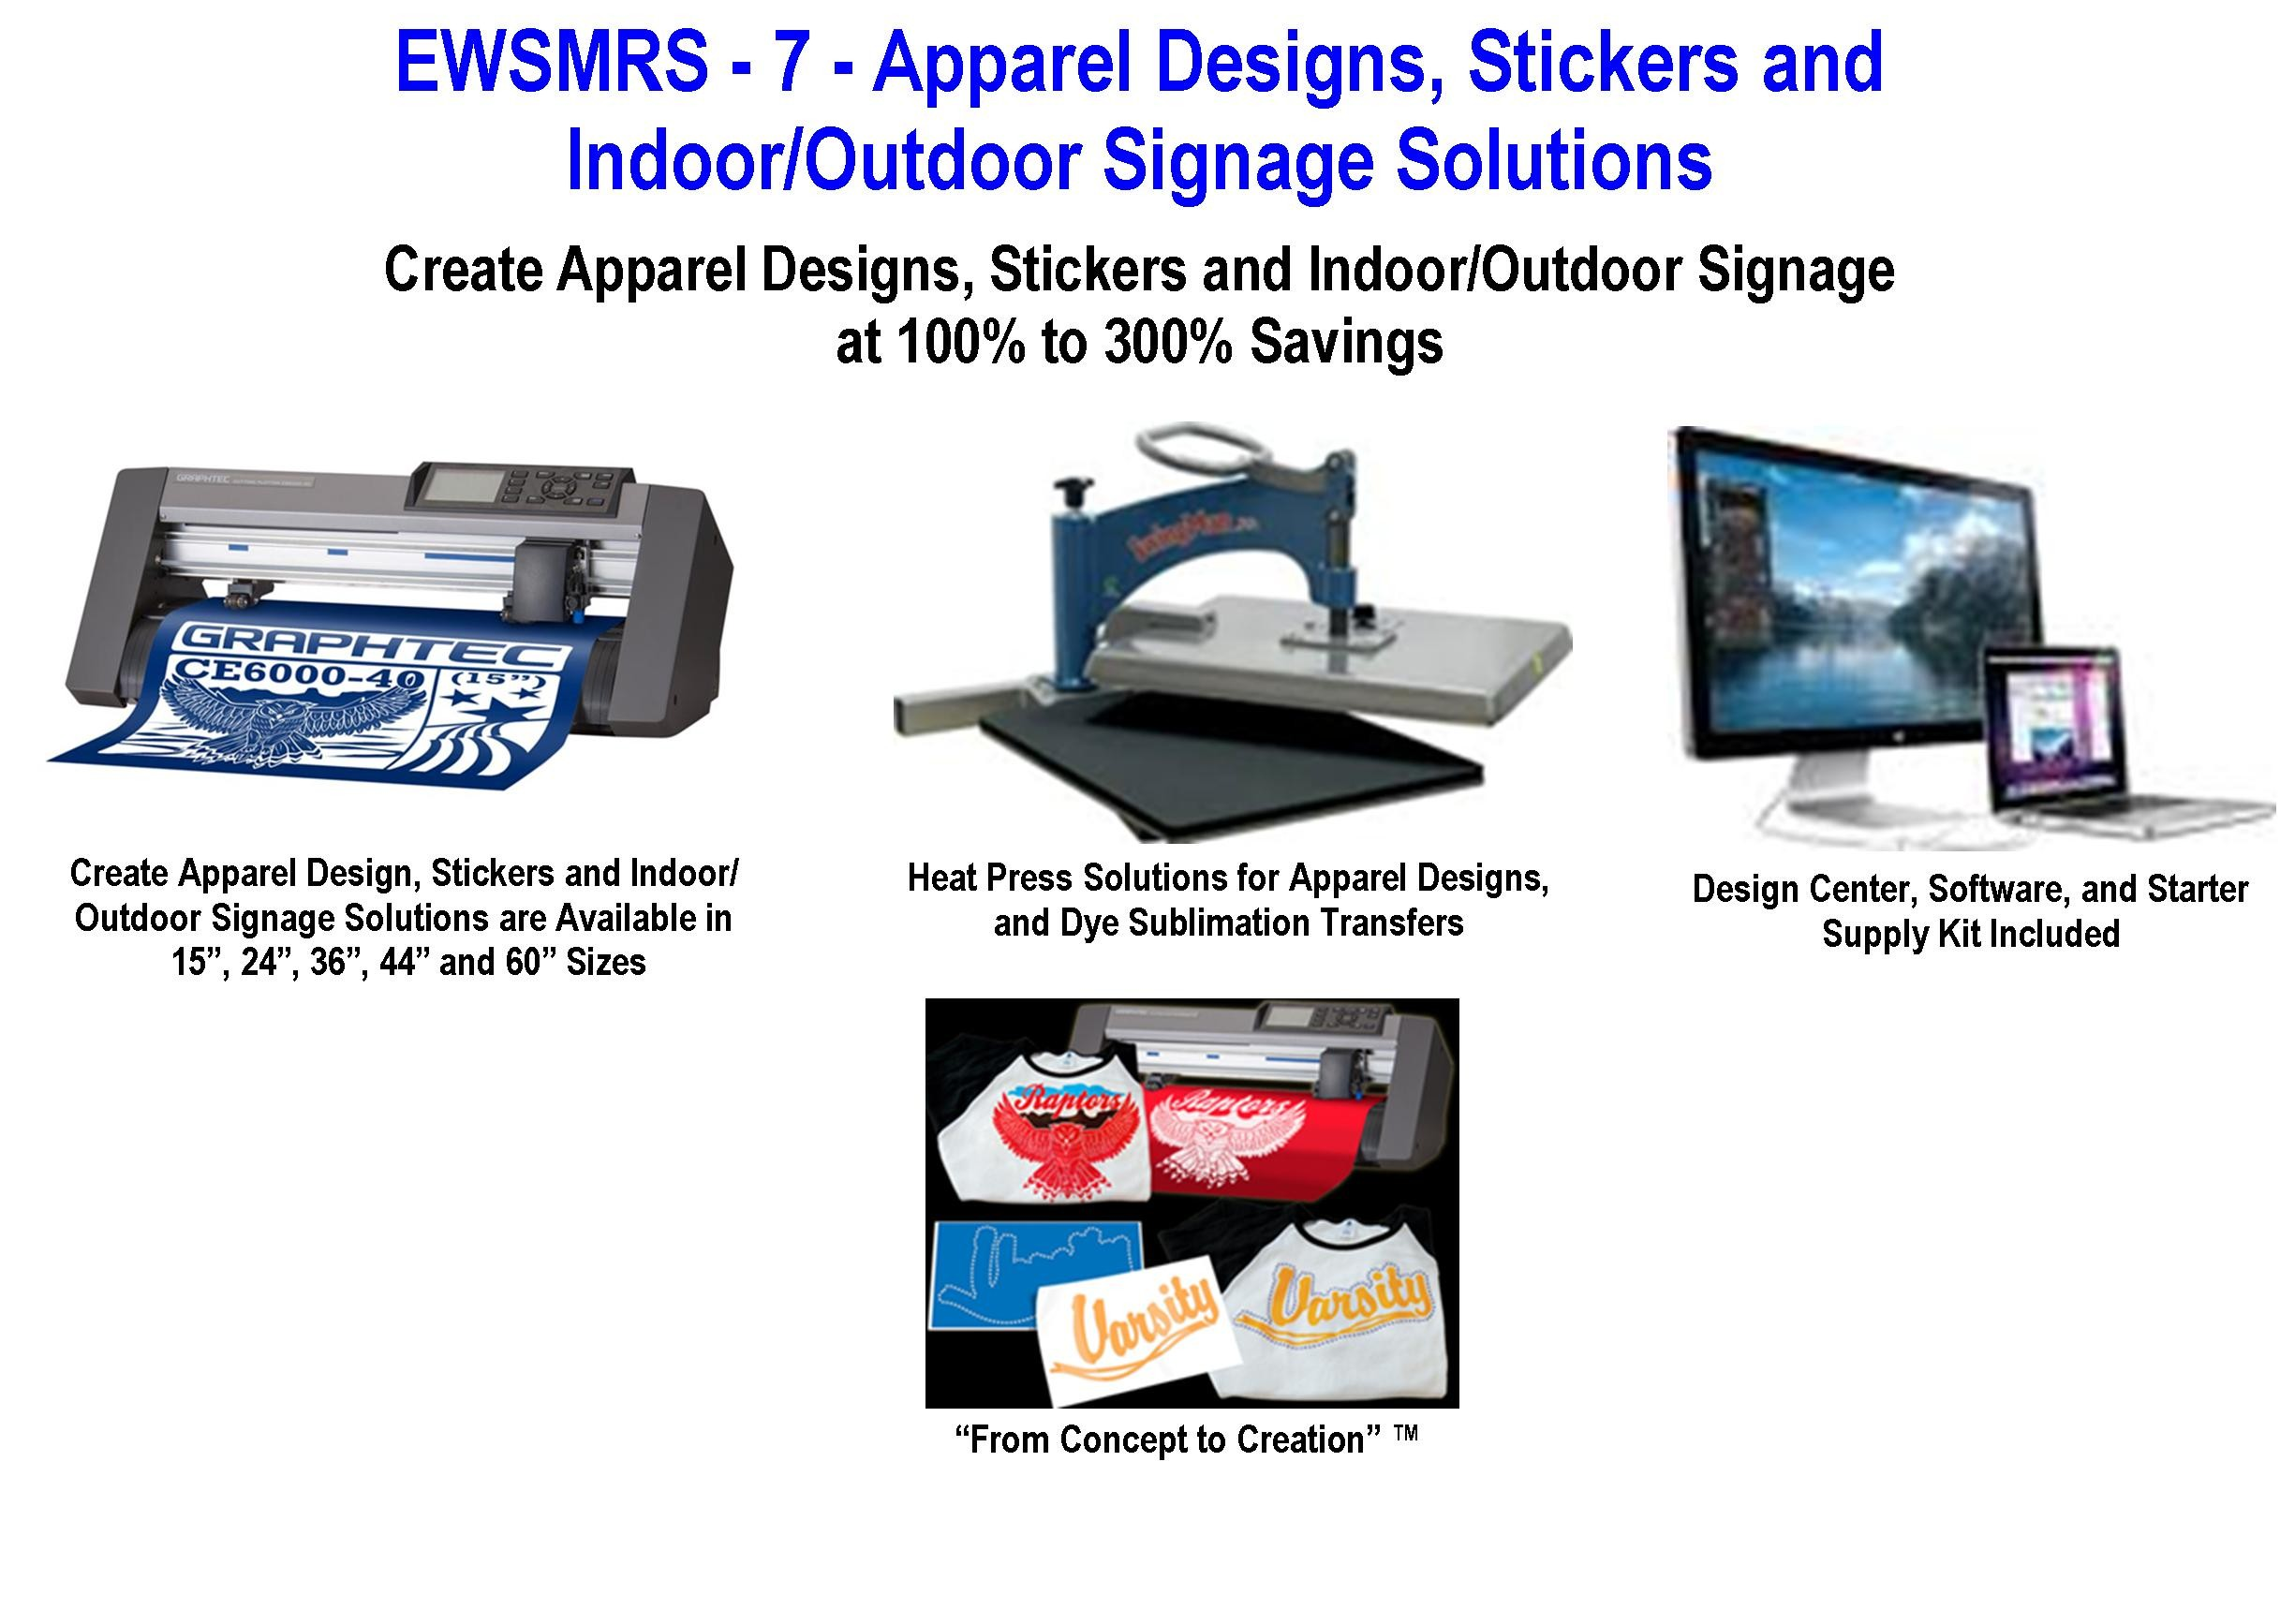 EWSMRS - 7 - Apparel Design , Stickers and Indoor/Outdoor Signage Solutions